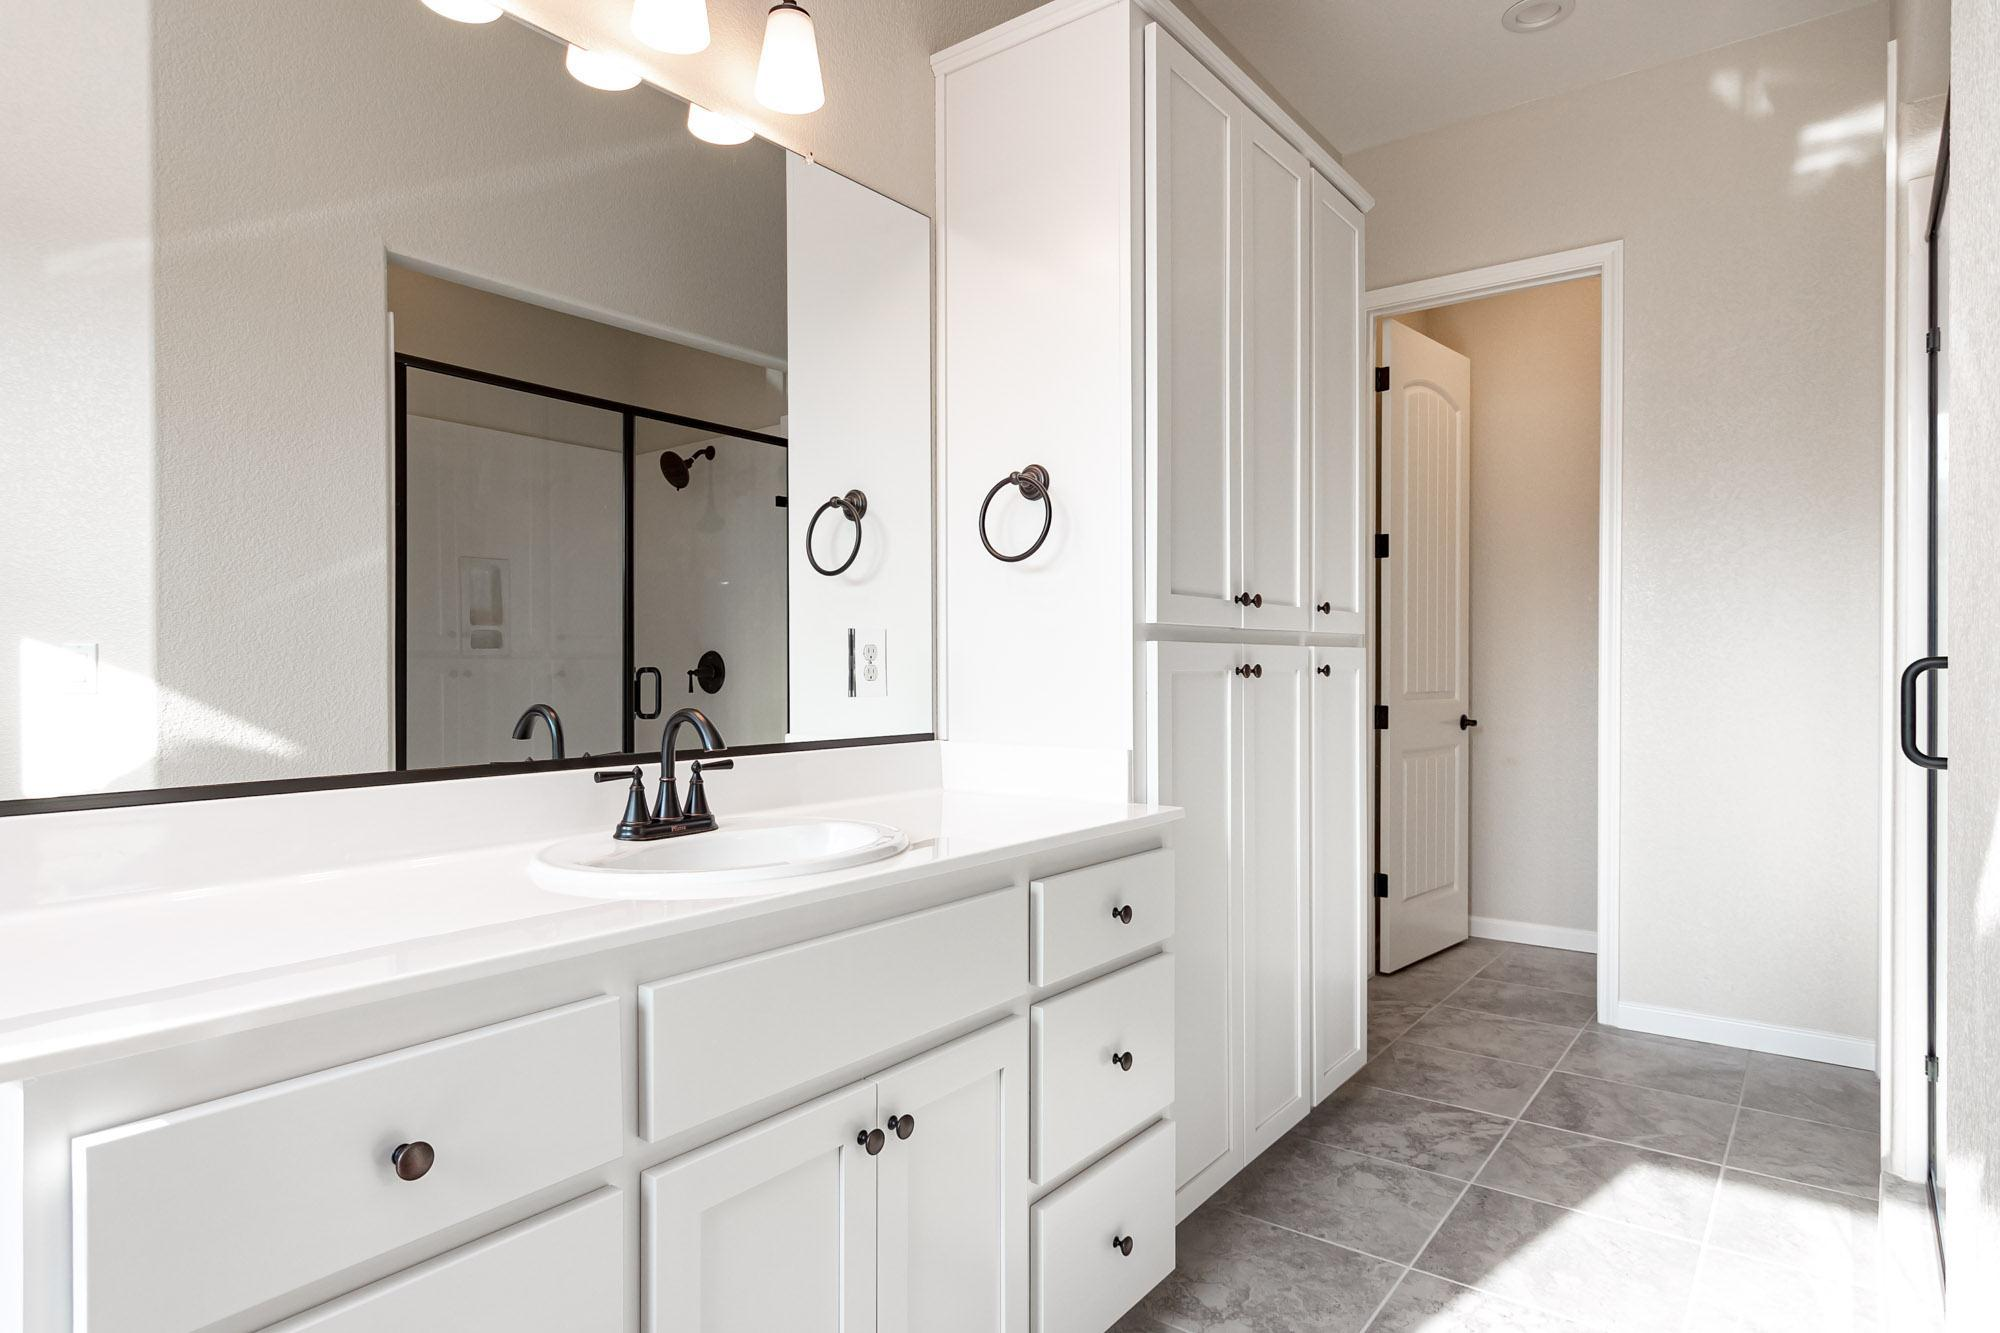 Bathroom featured in The Trinity By Windward Pacific Builders in Modesto, CA